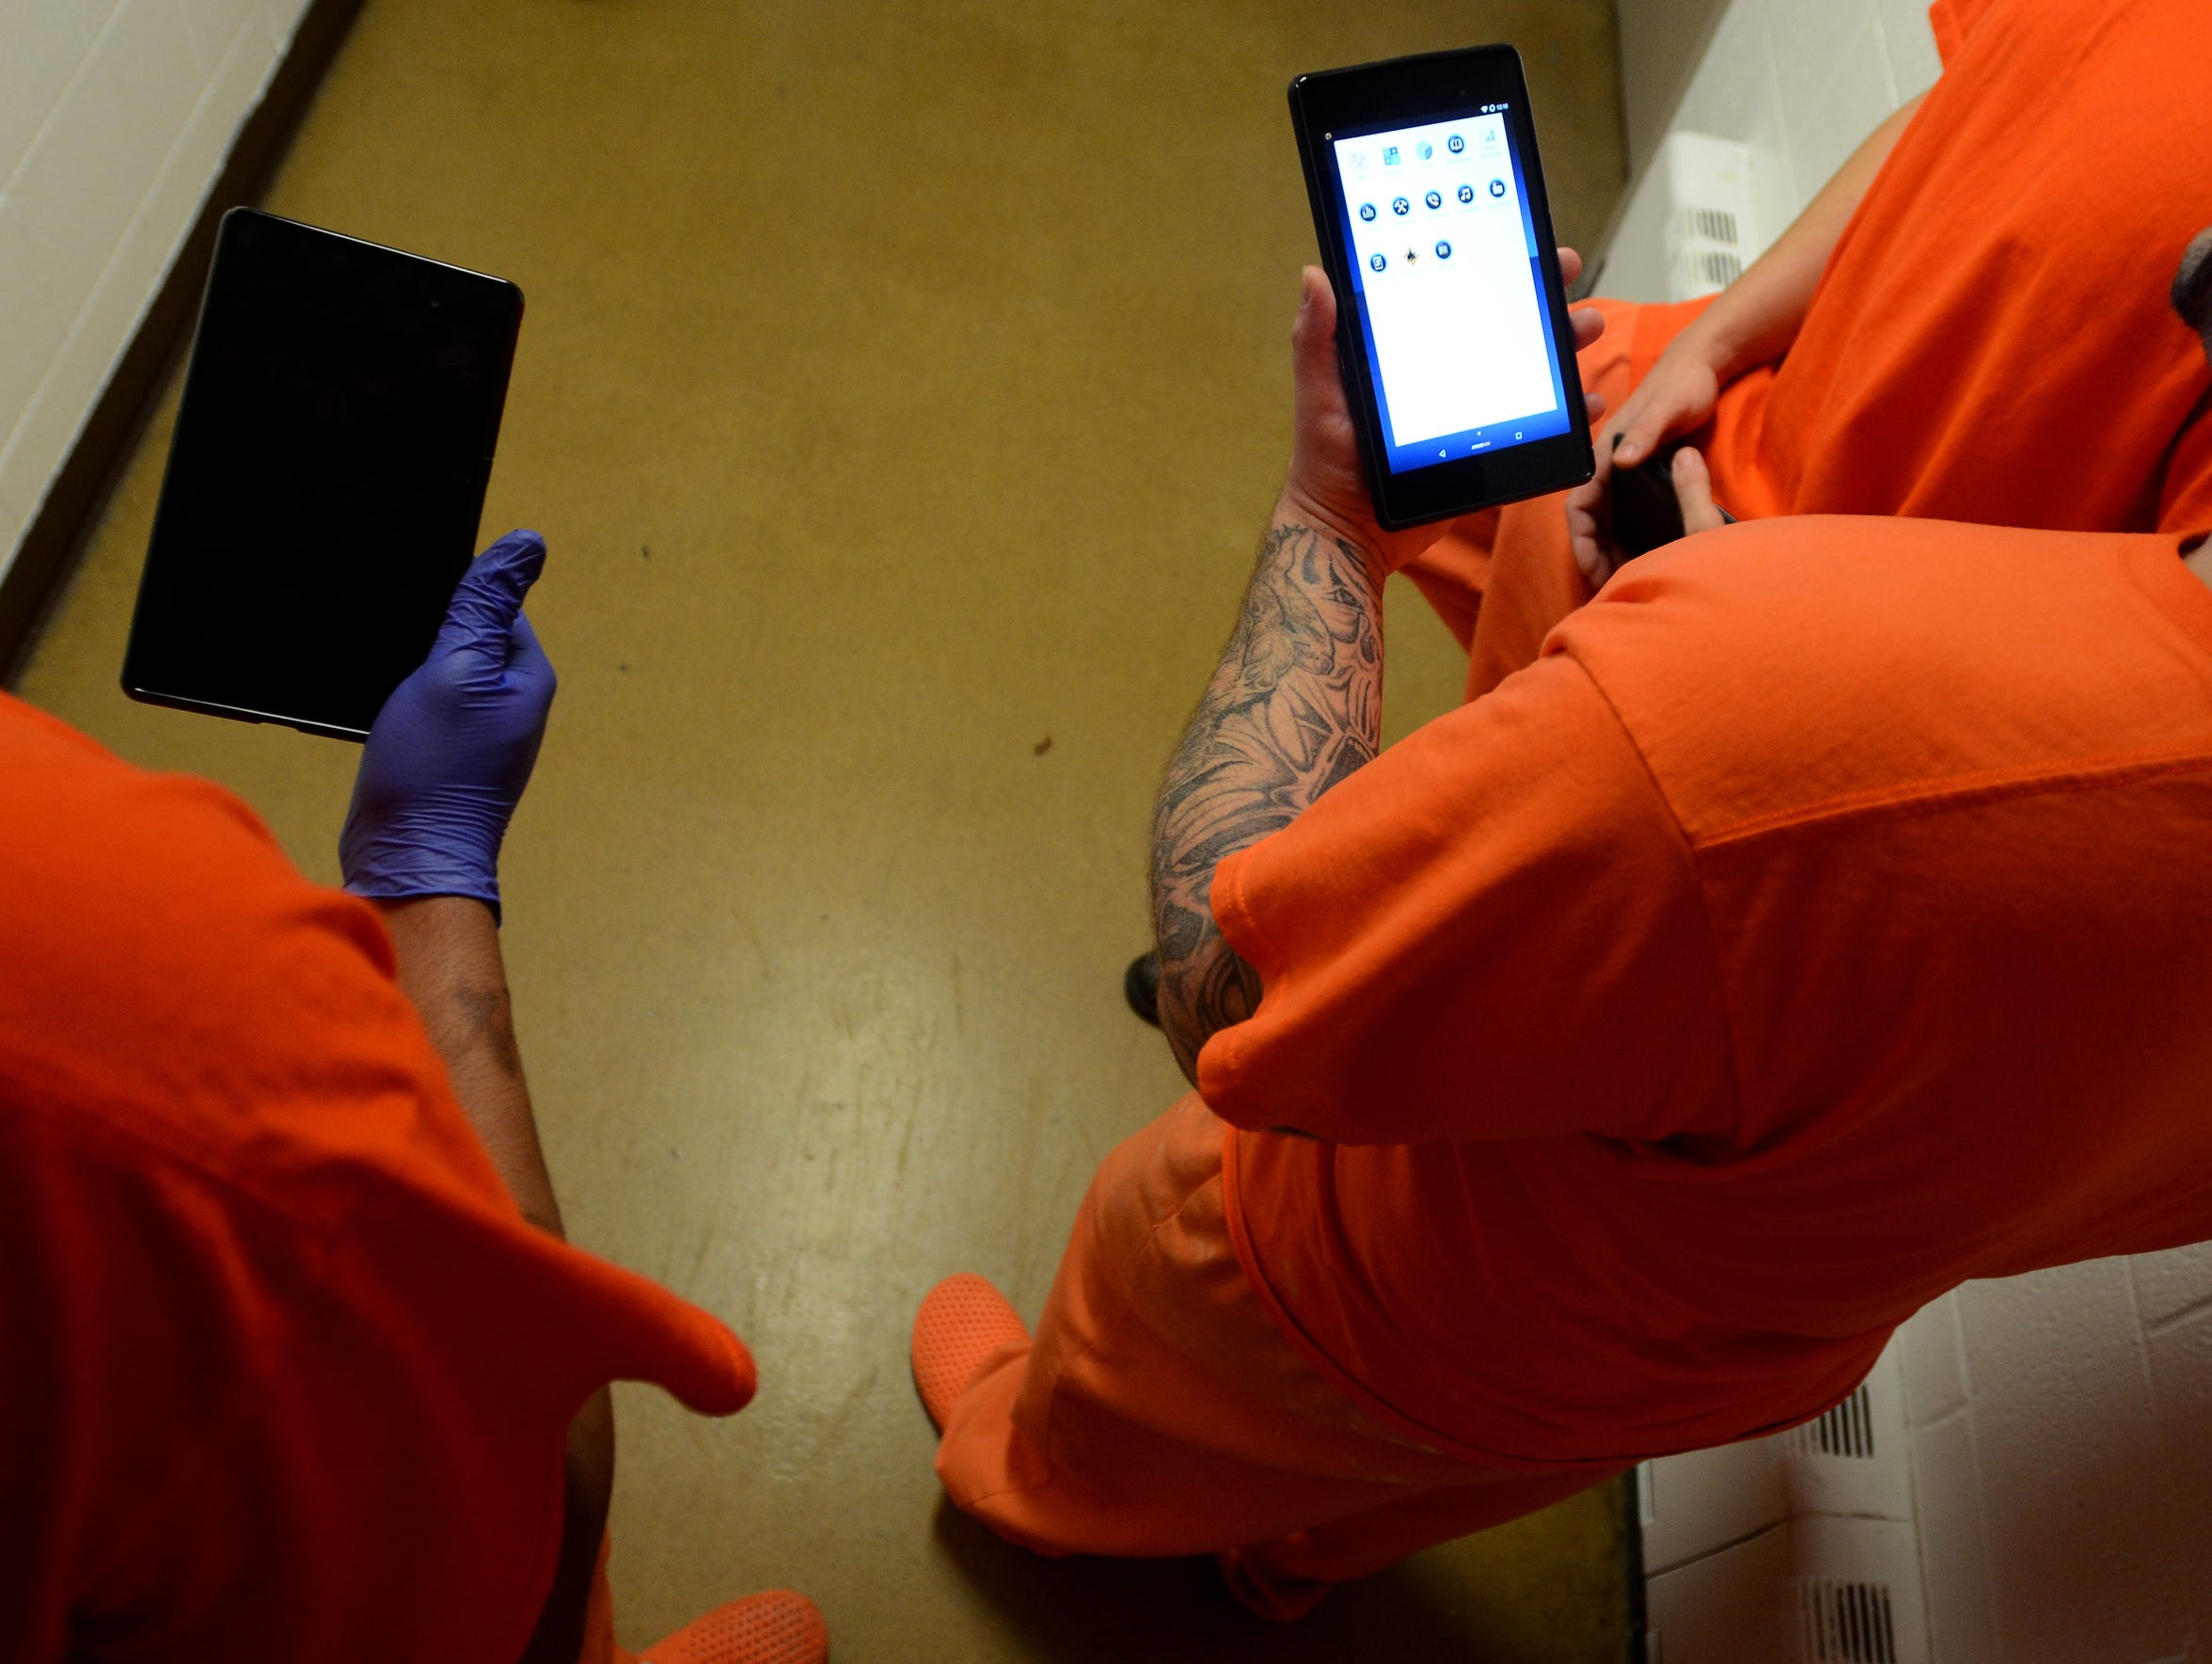 A group of inmates hold their tablets in their hands